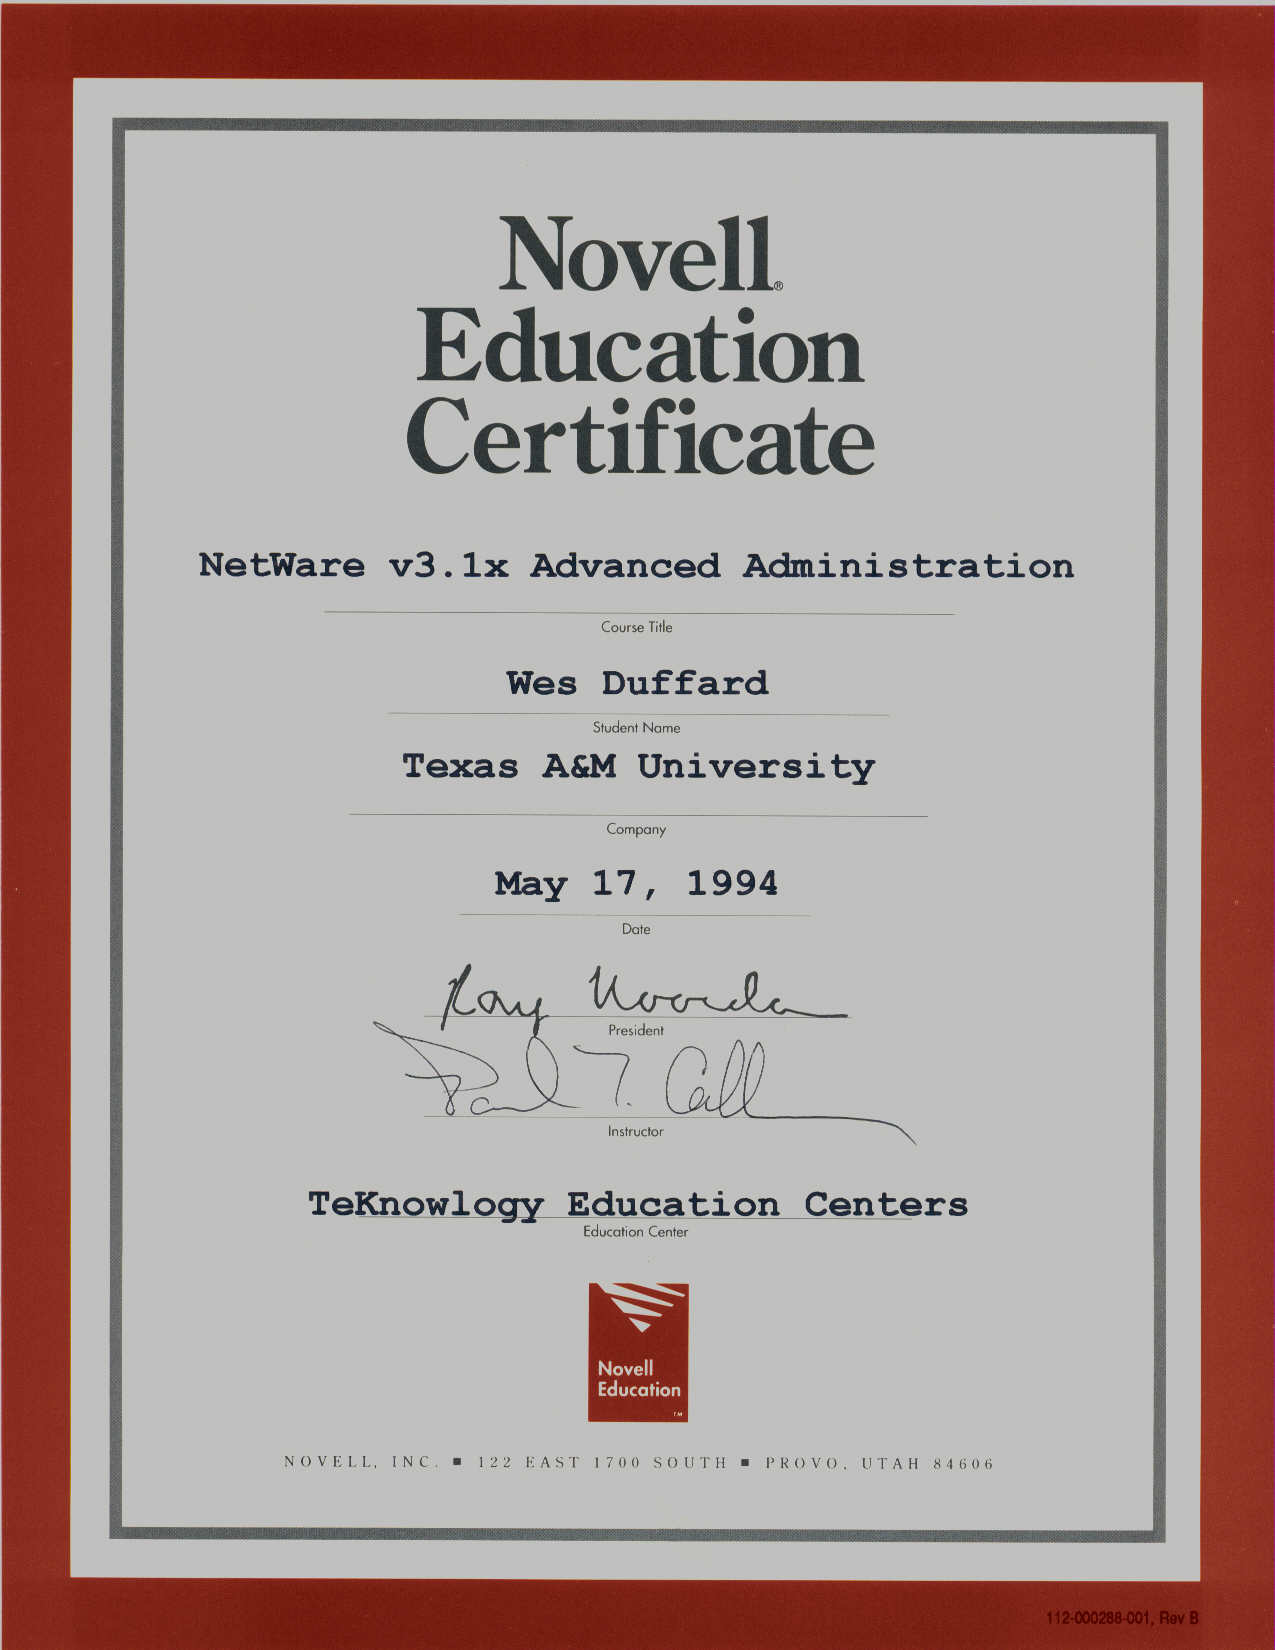 novell certificates training administration netware 1994 advanced education